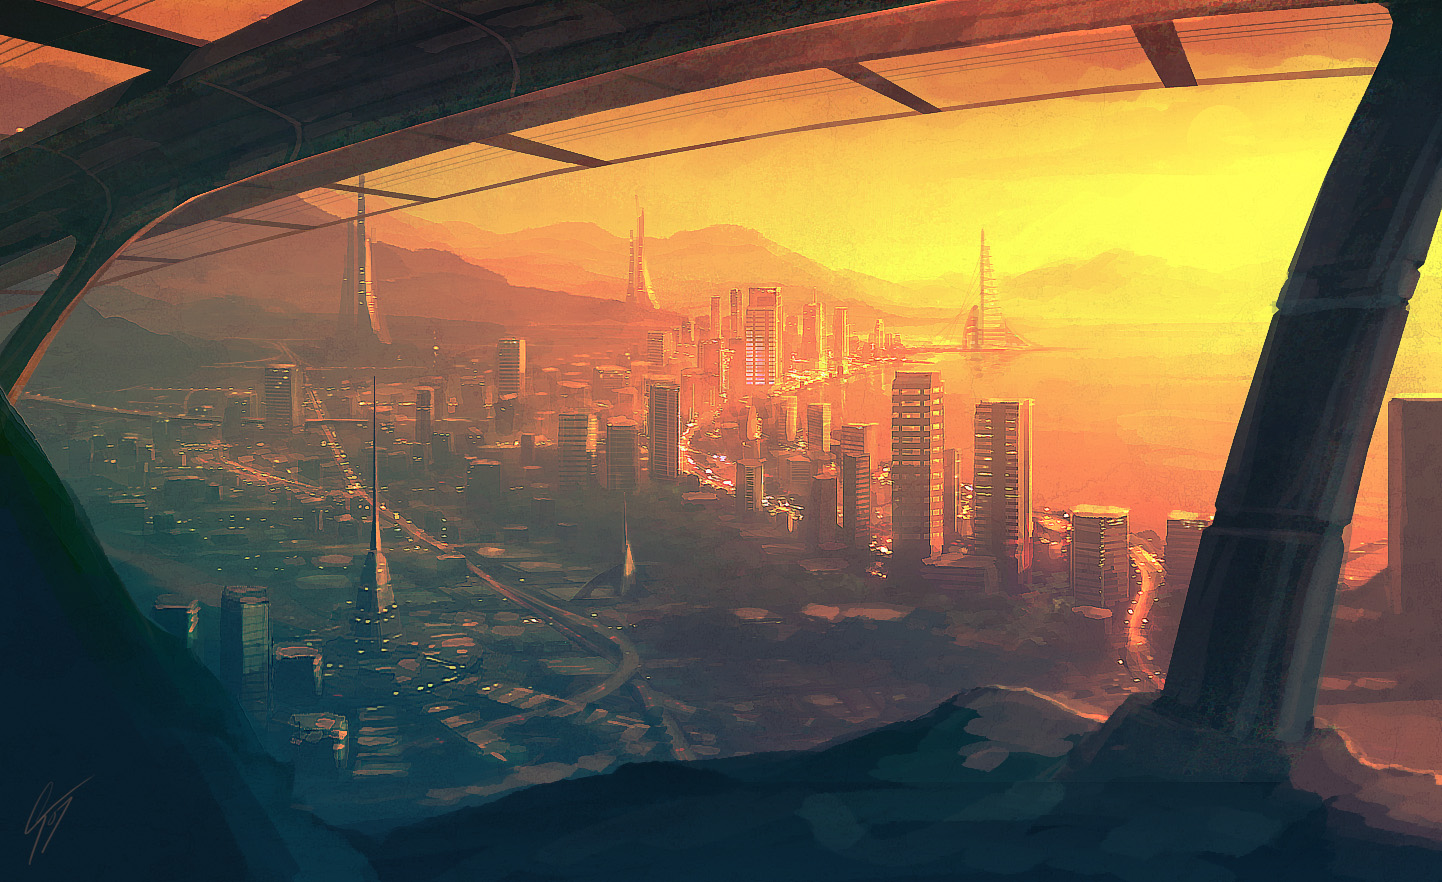 Speedpaint Future City - Graphic Design Inspiration